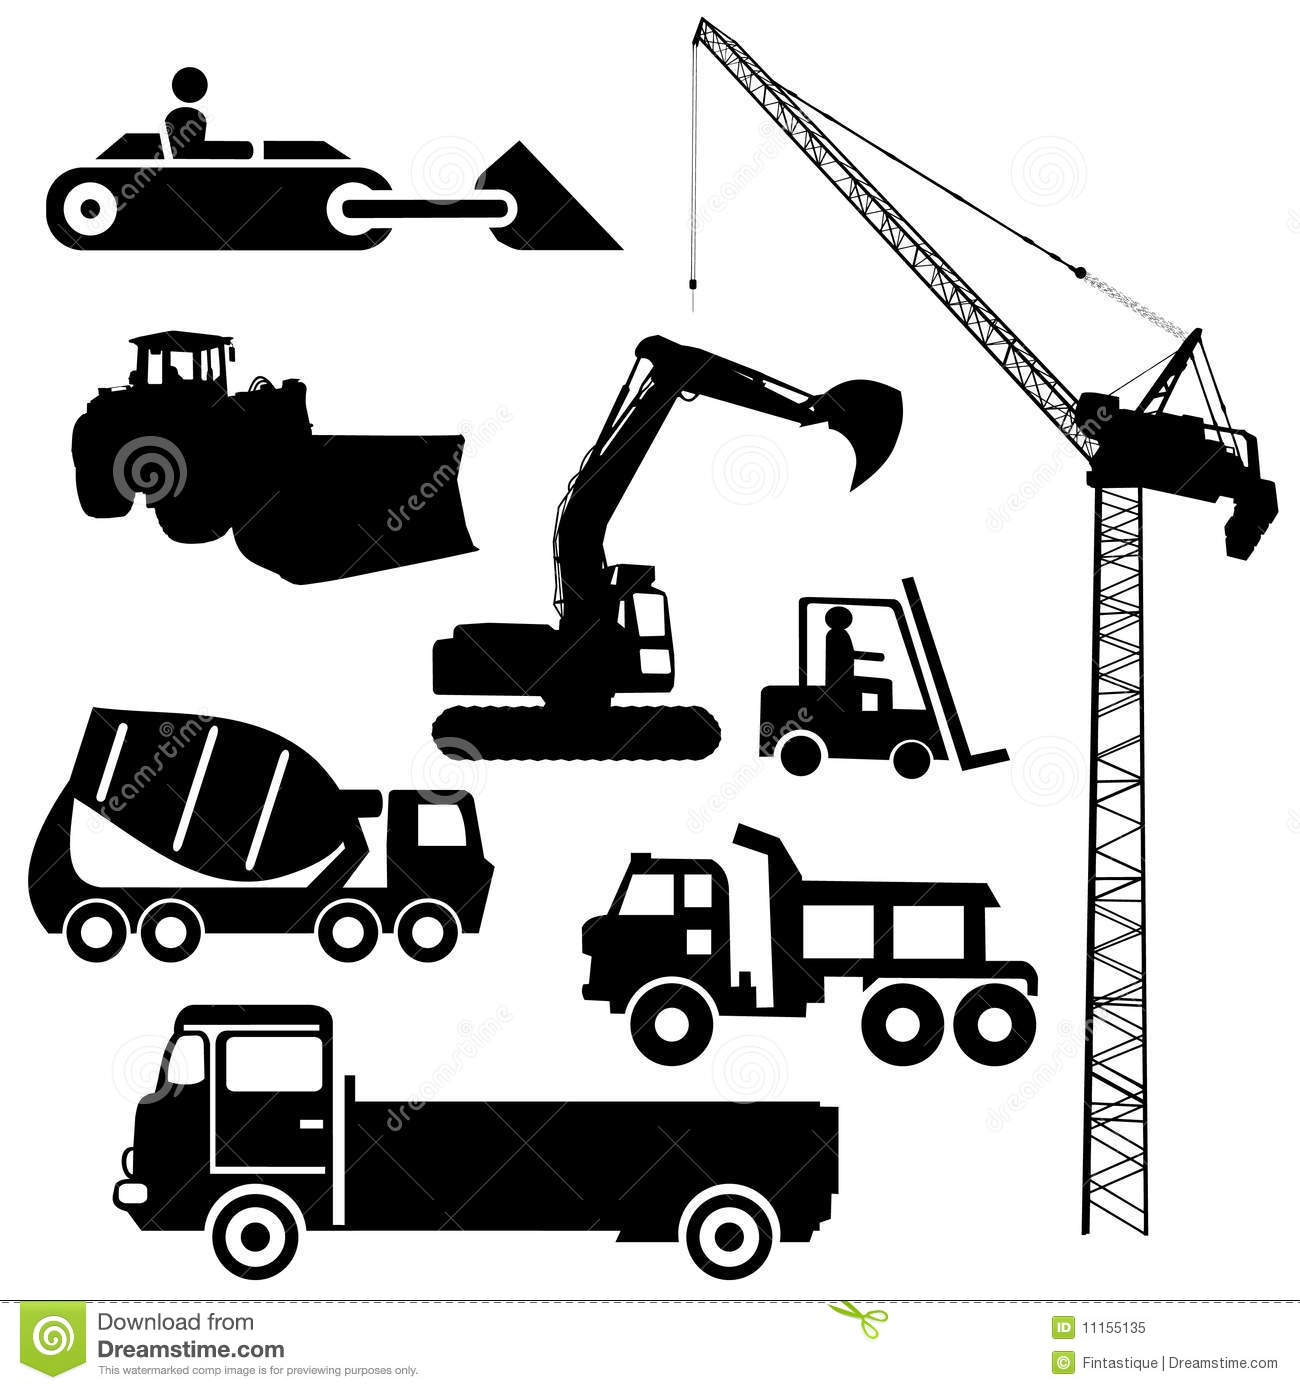 Construction Machinery Silhouettes Royalty Free Stock Photo.